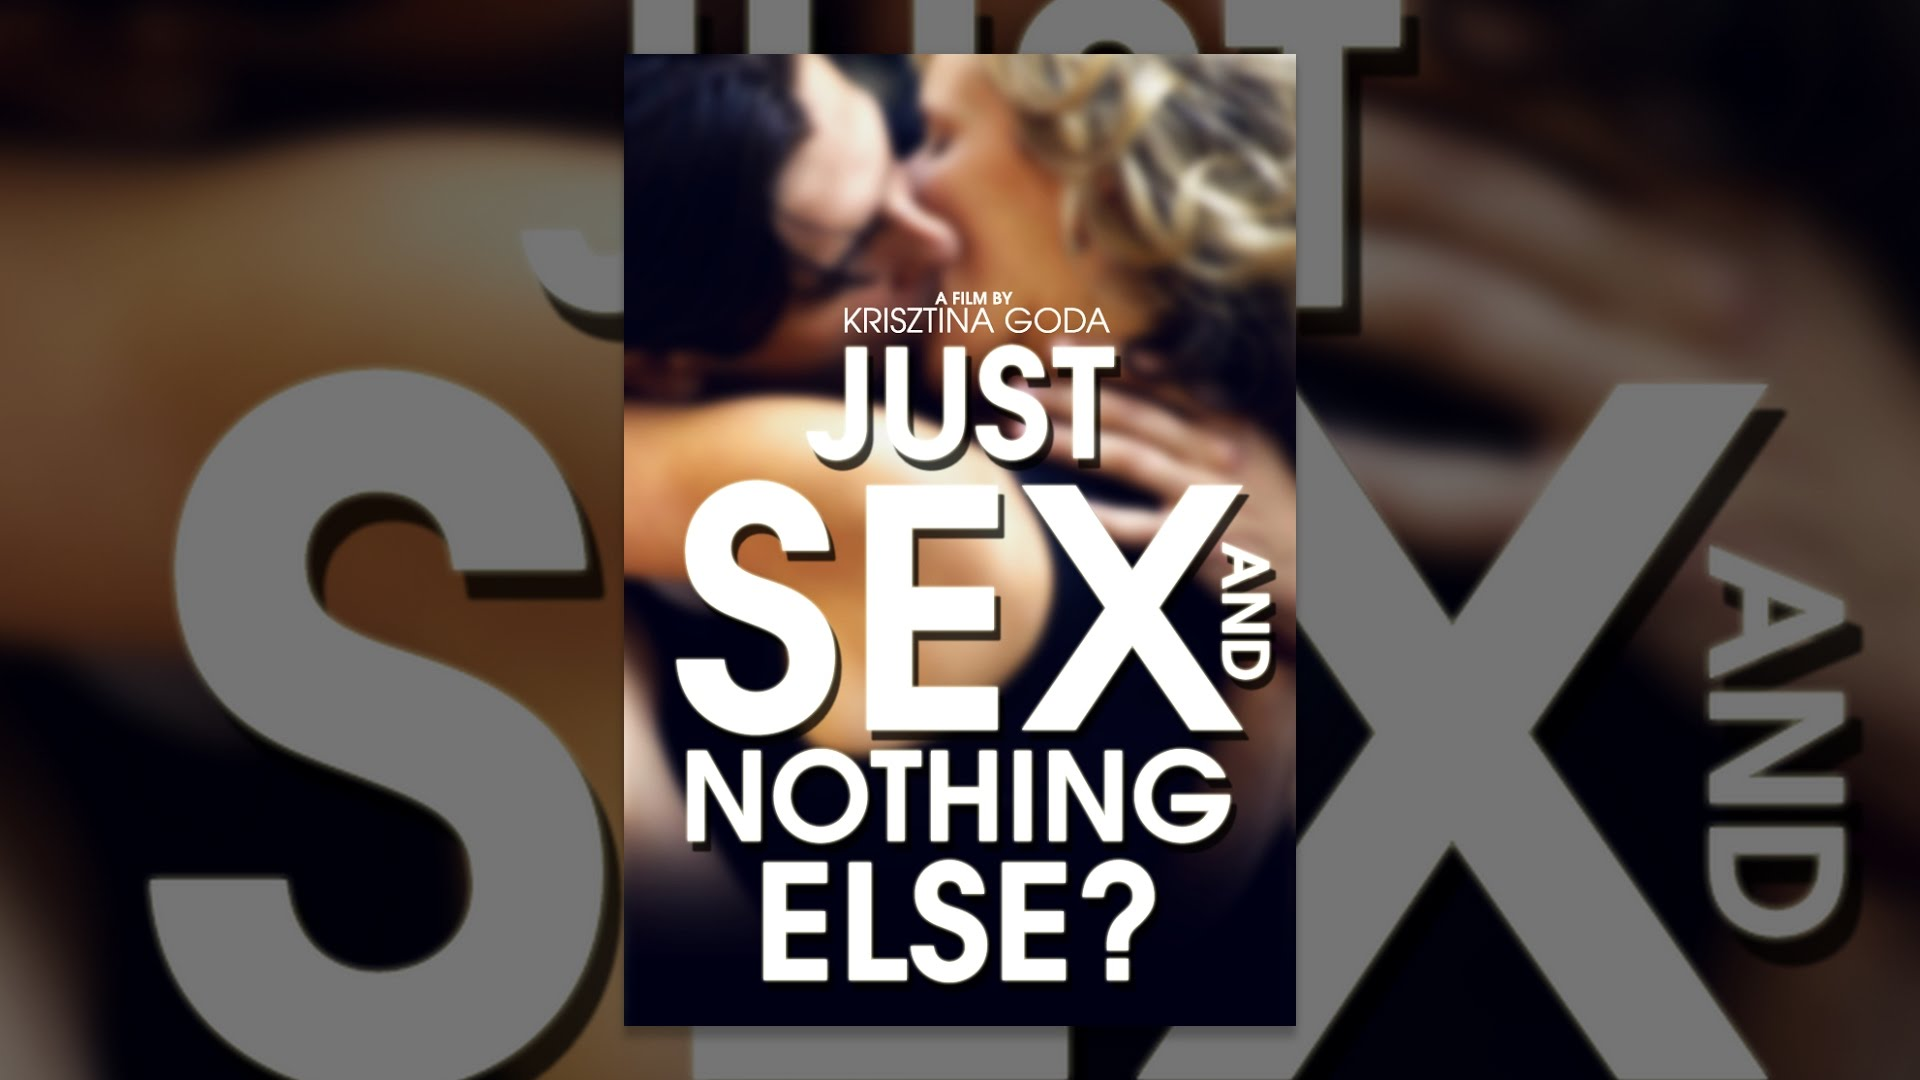 Watch just sex and nothing else online